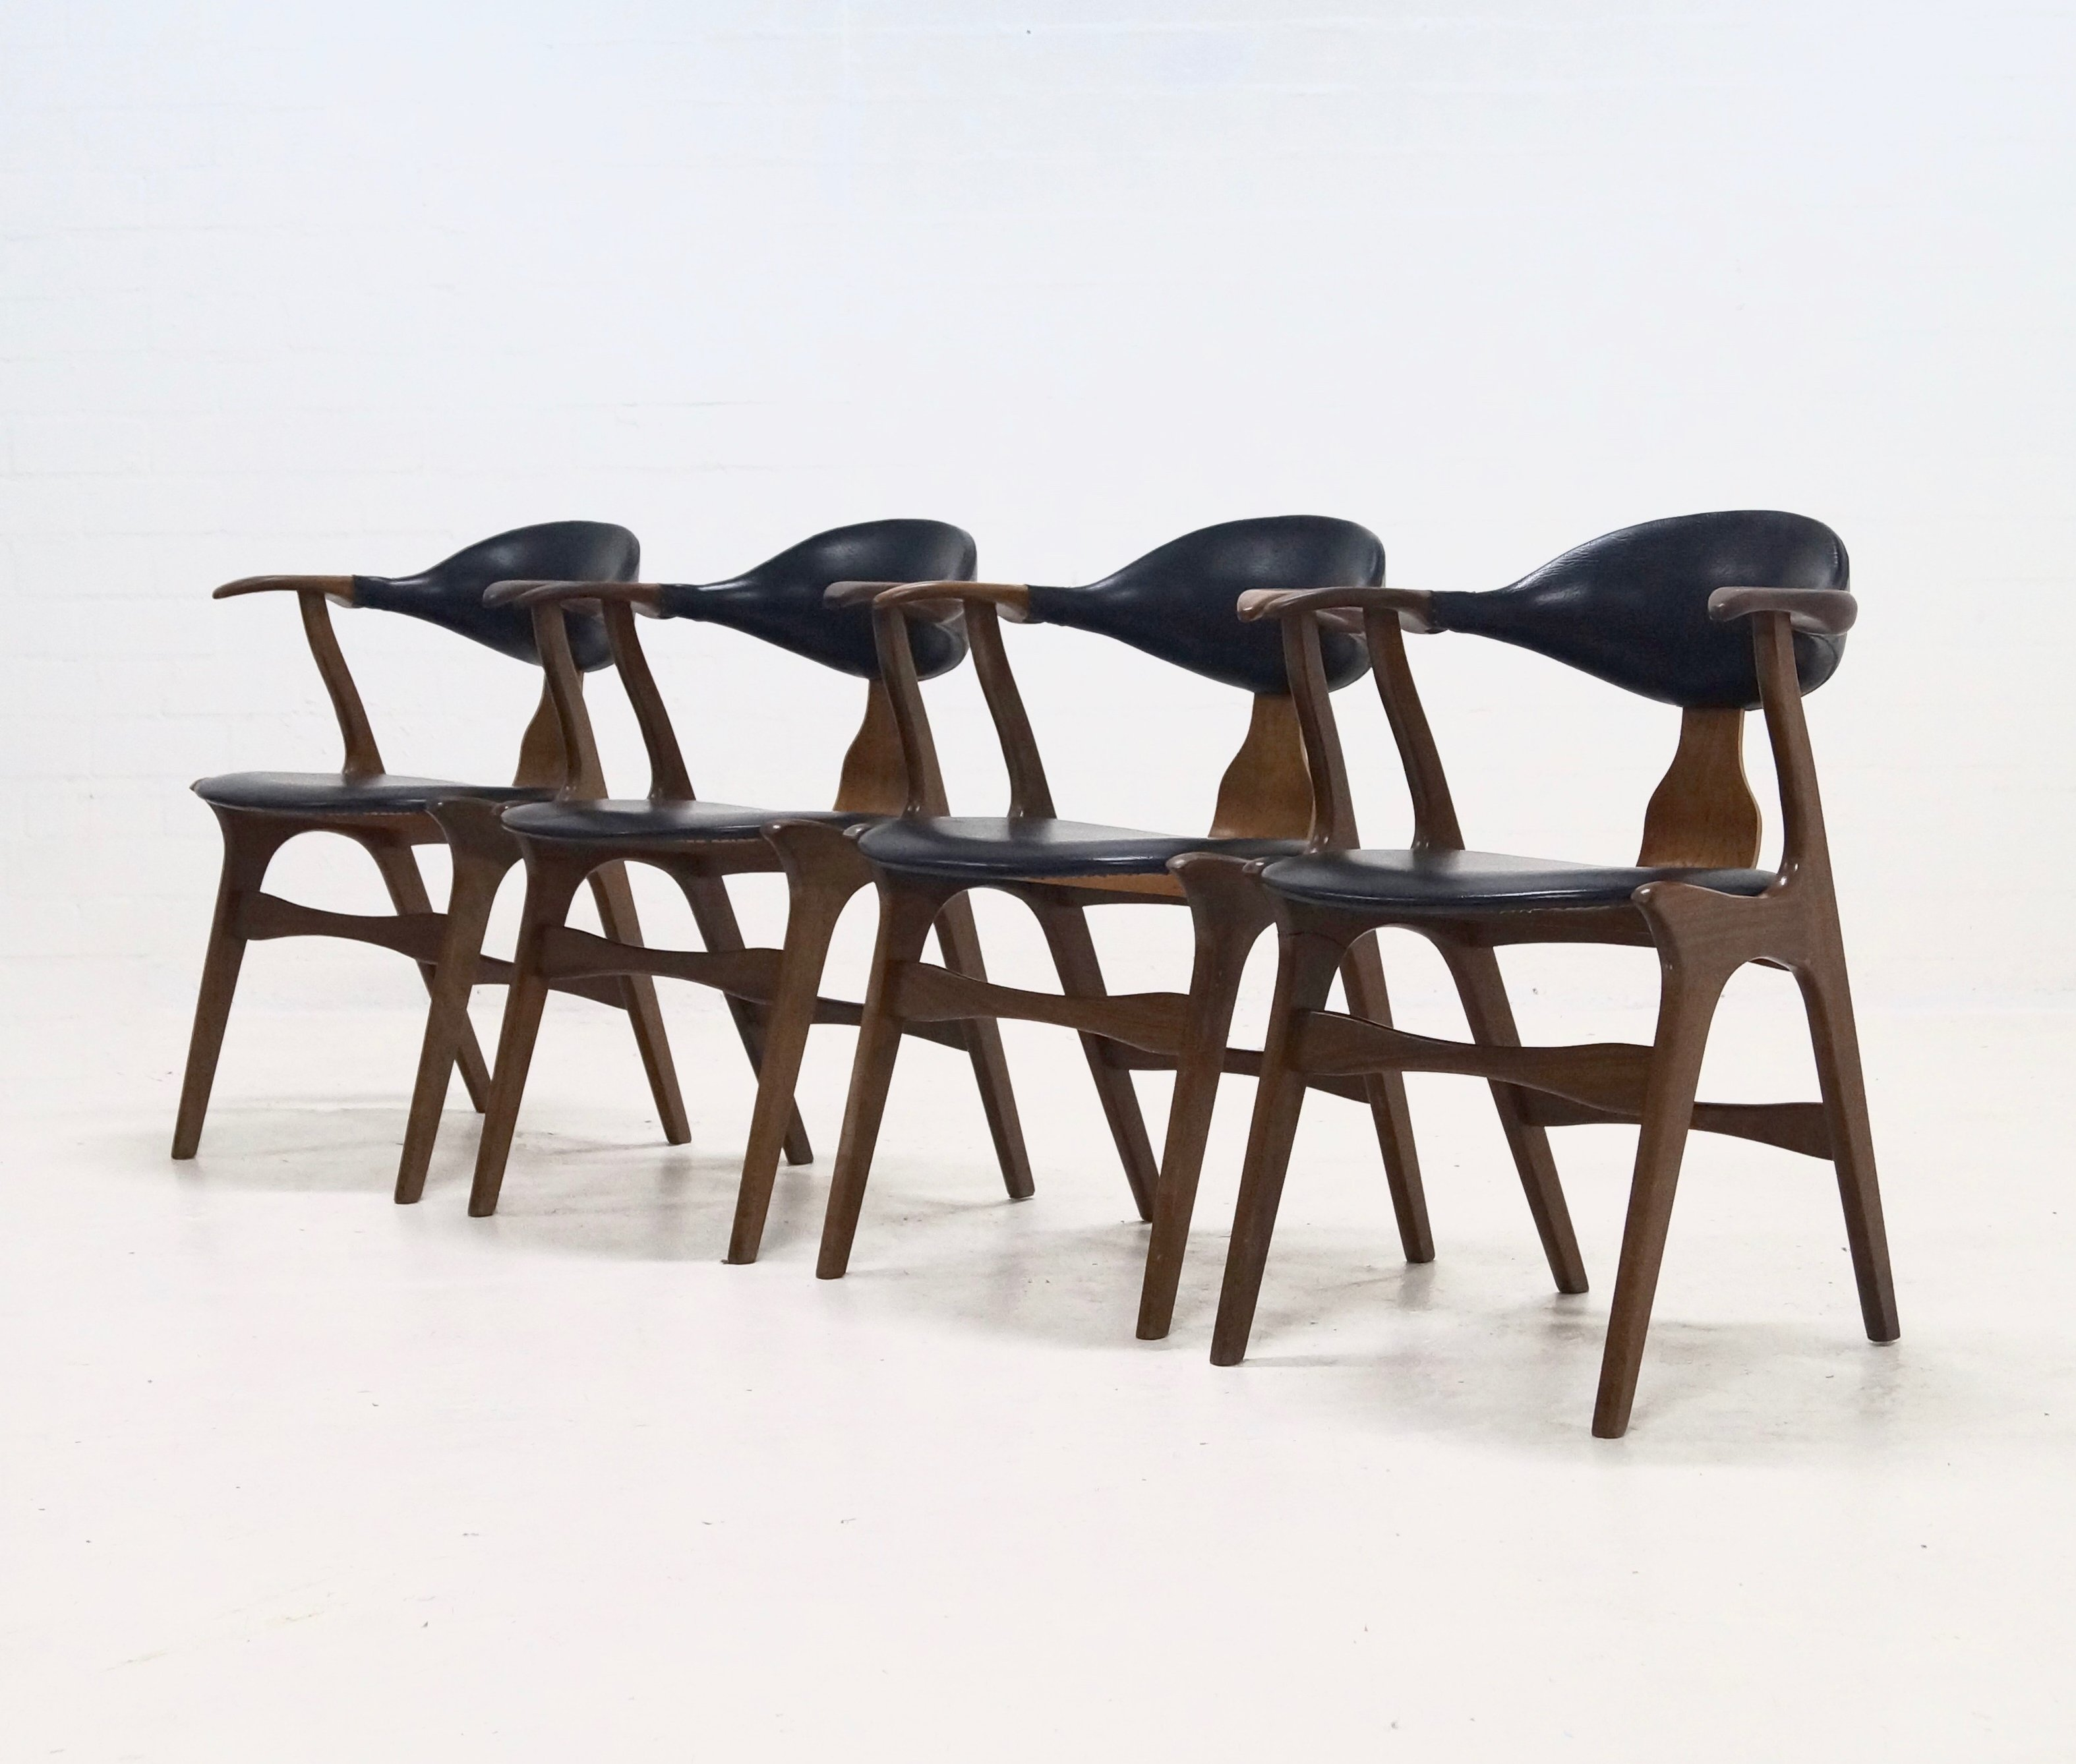 Set Of 4 Cow Horn Chairs By Louis Van Teeffelen For AWA, 1960